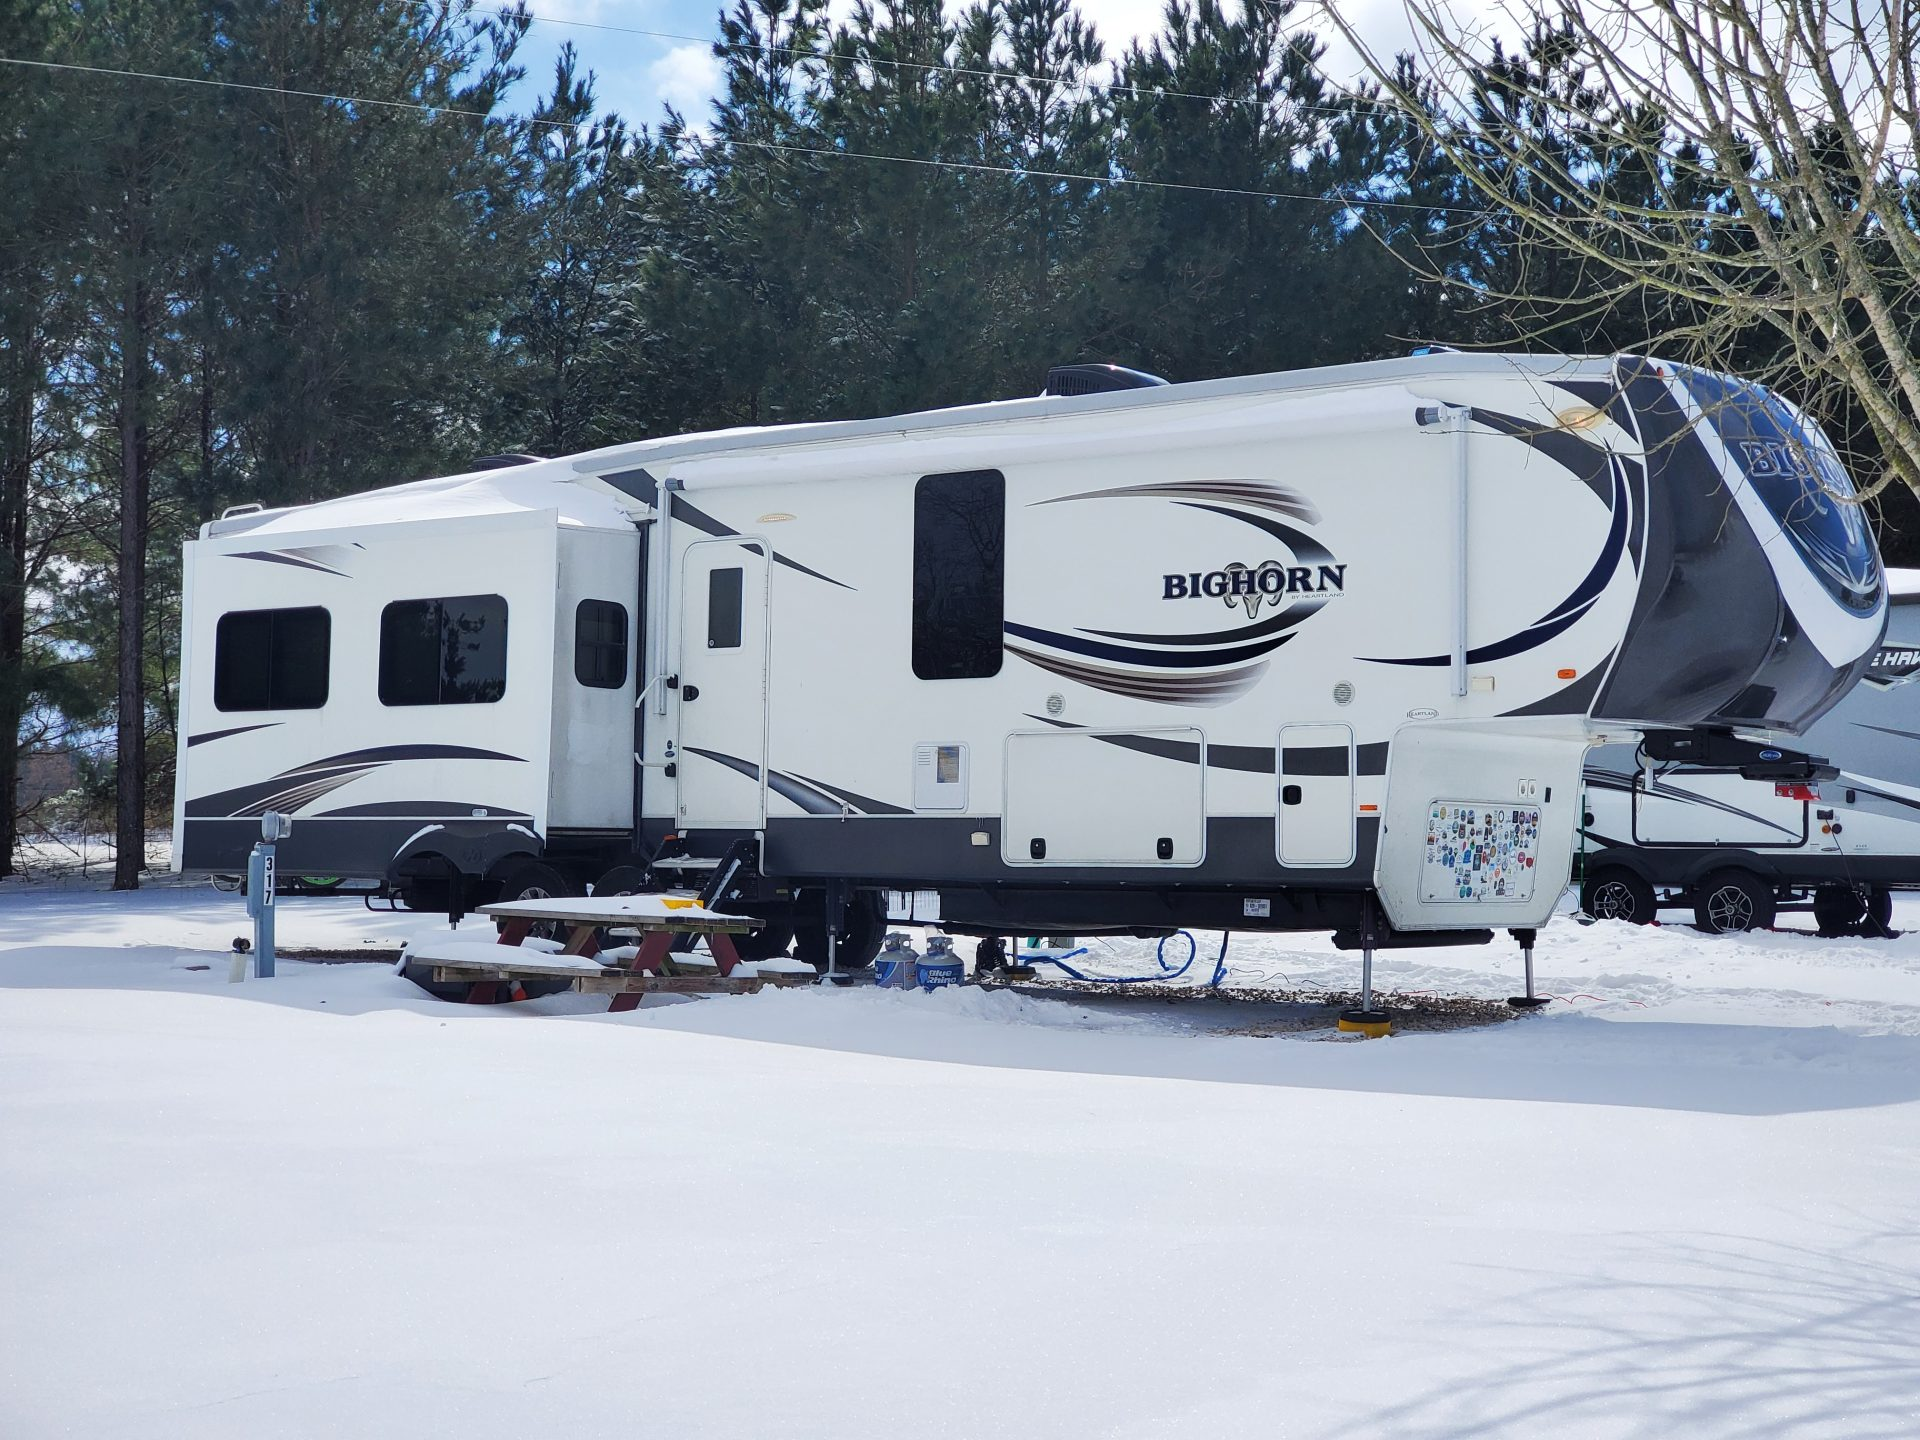 Surviving cold and snow in an RV